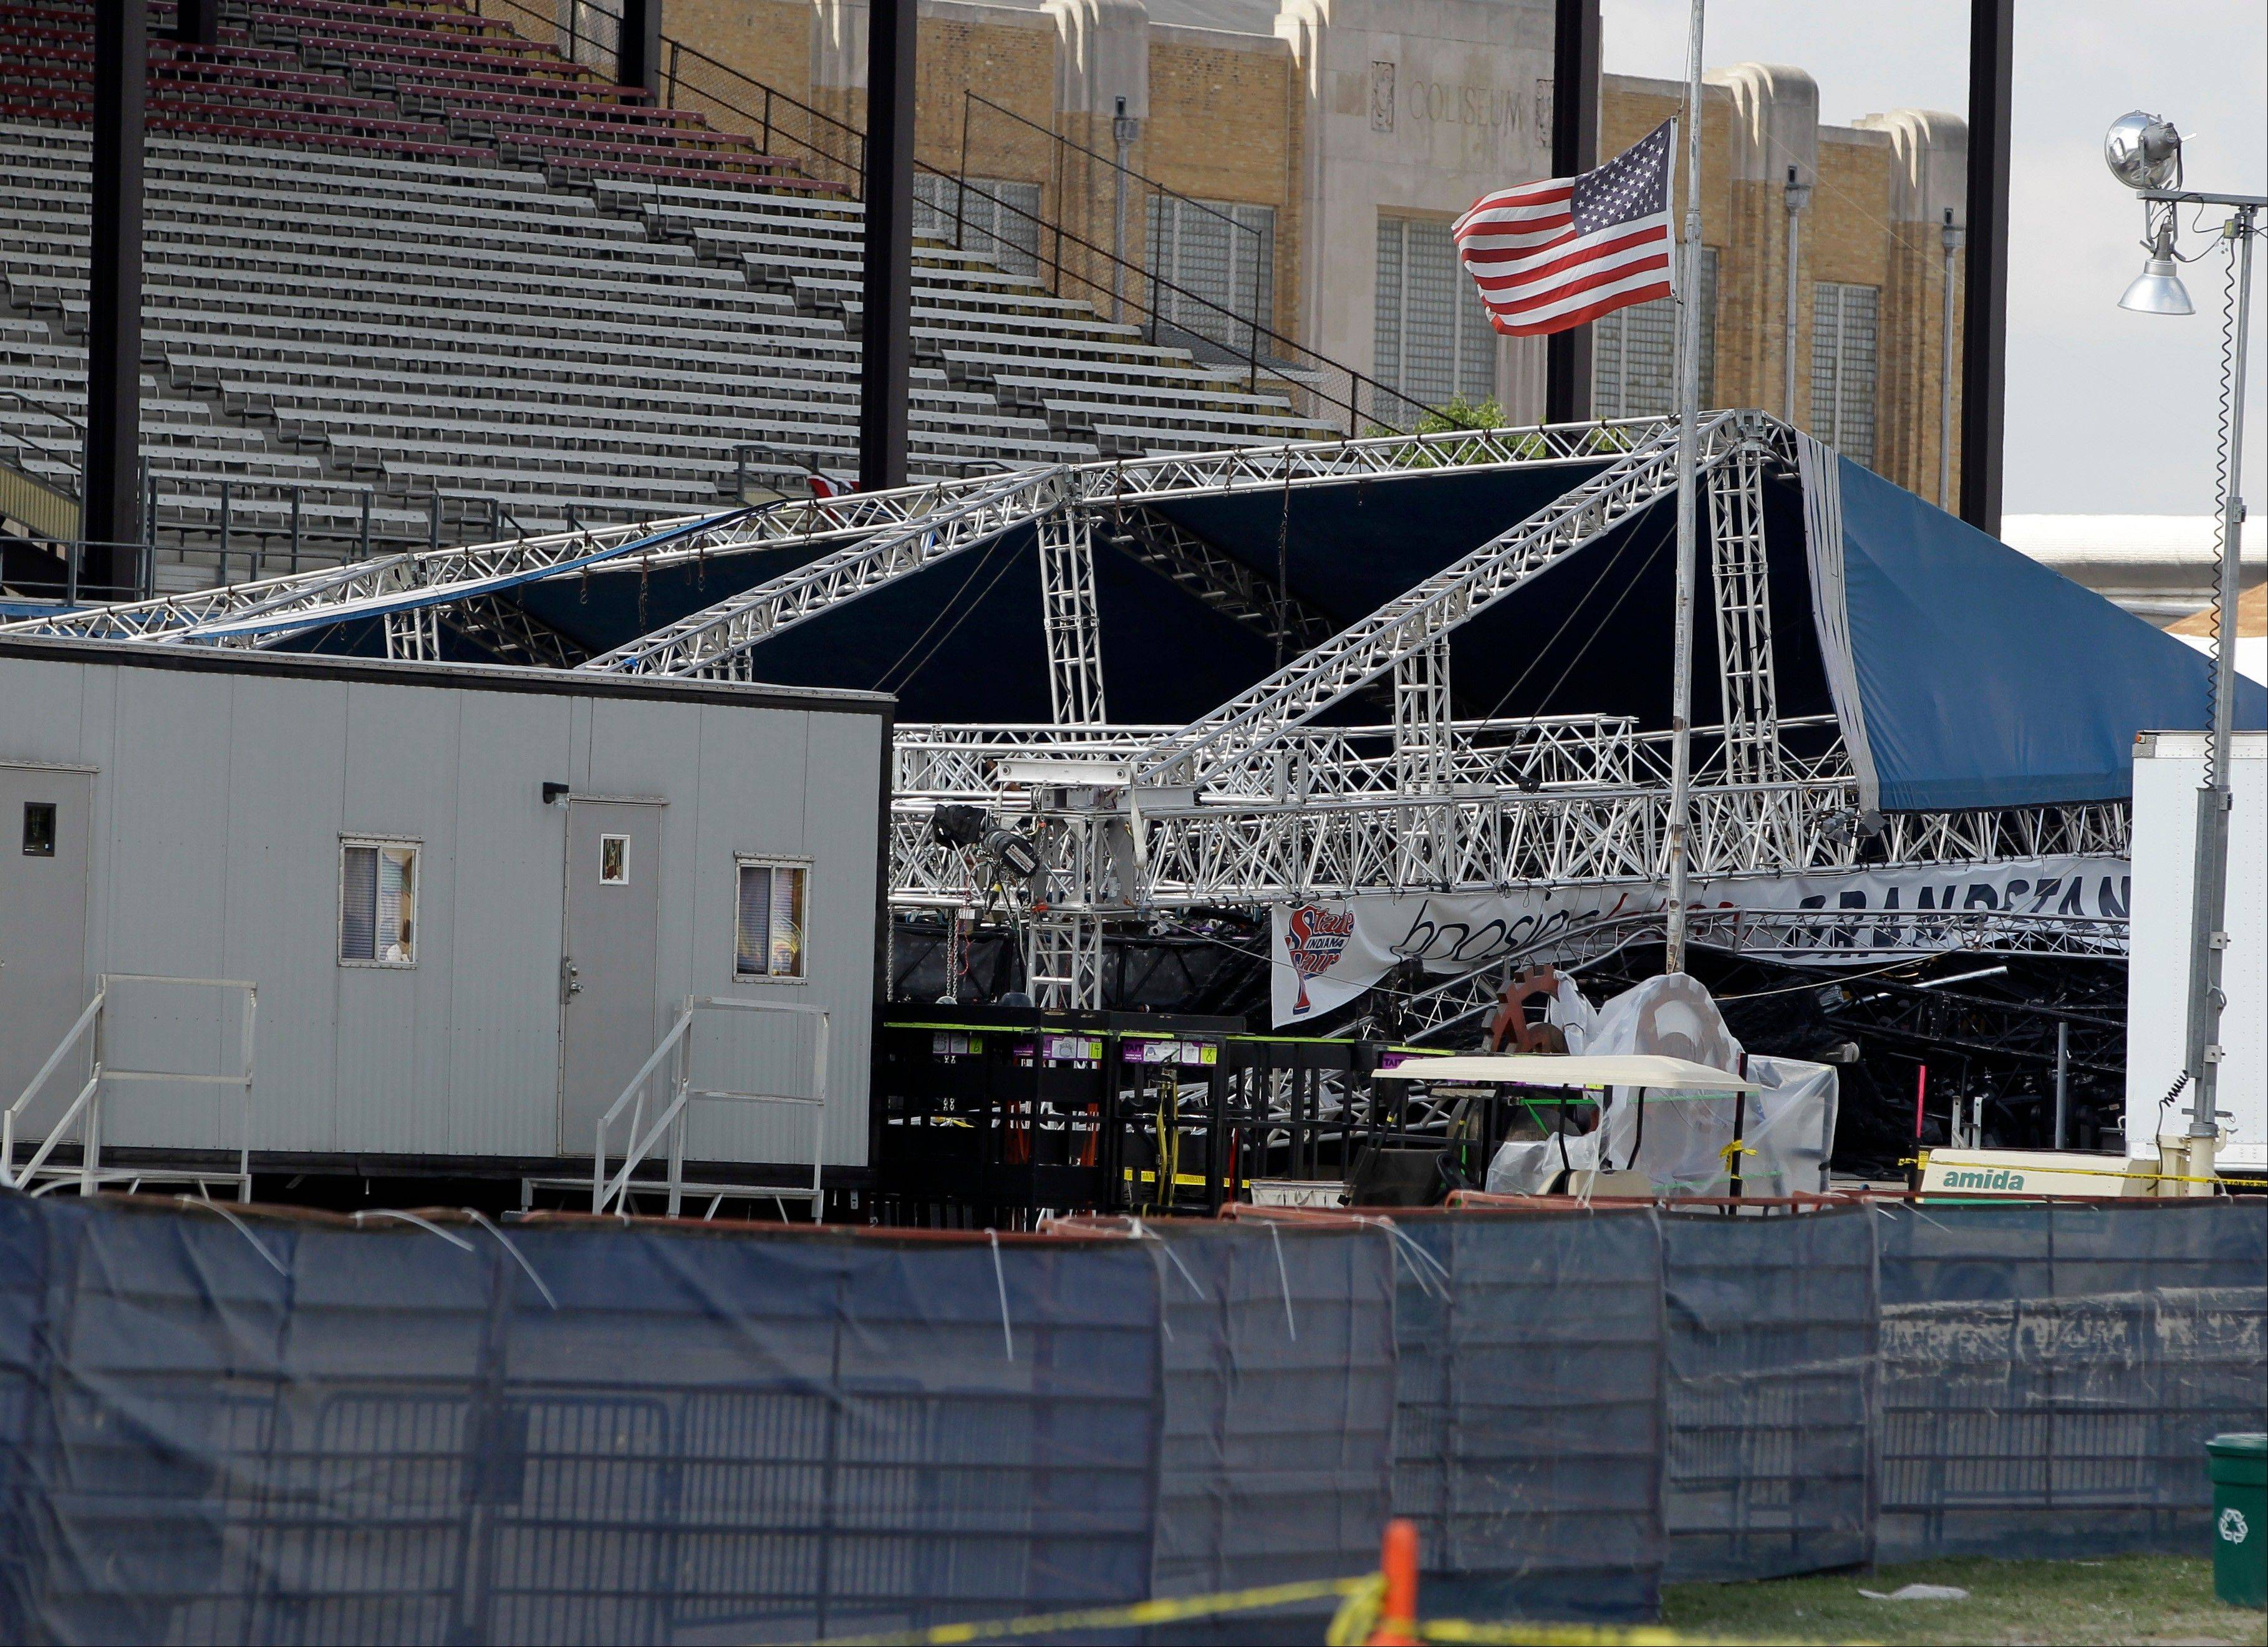 A flag flies at half-staff near the collapsed stage Indiana State Fair in Indianapolis where five people were killed Saturday night in the accident.